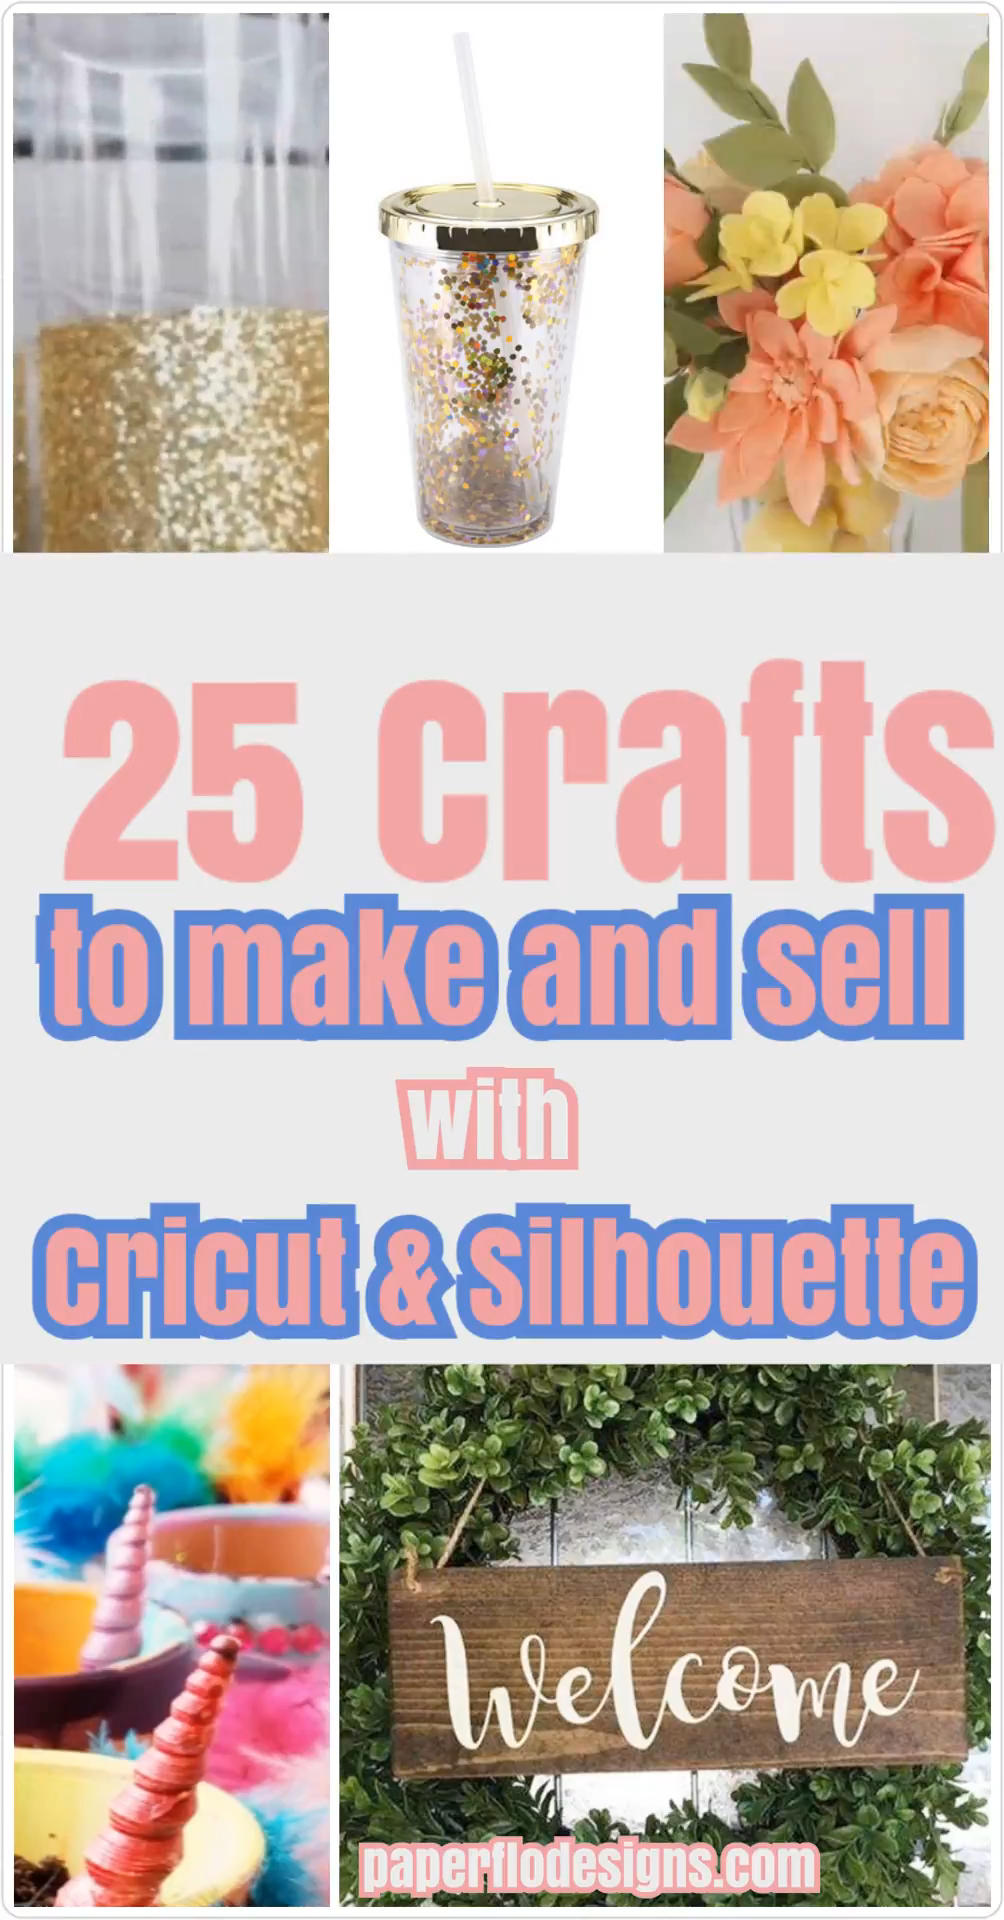 Photo of 25 Crafts to make and sell with Cricut and Silhouette